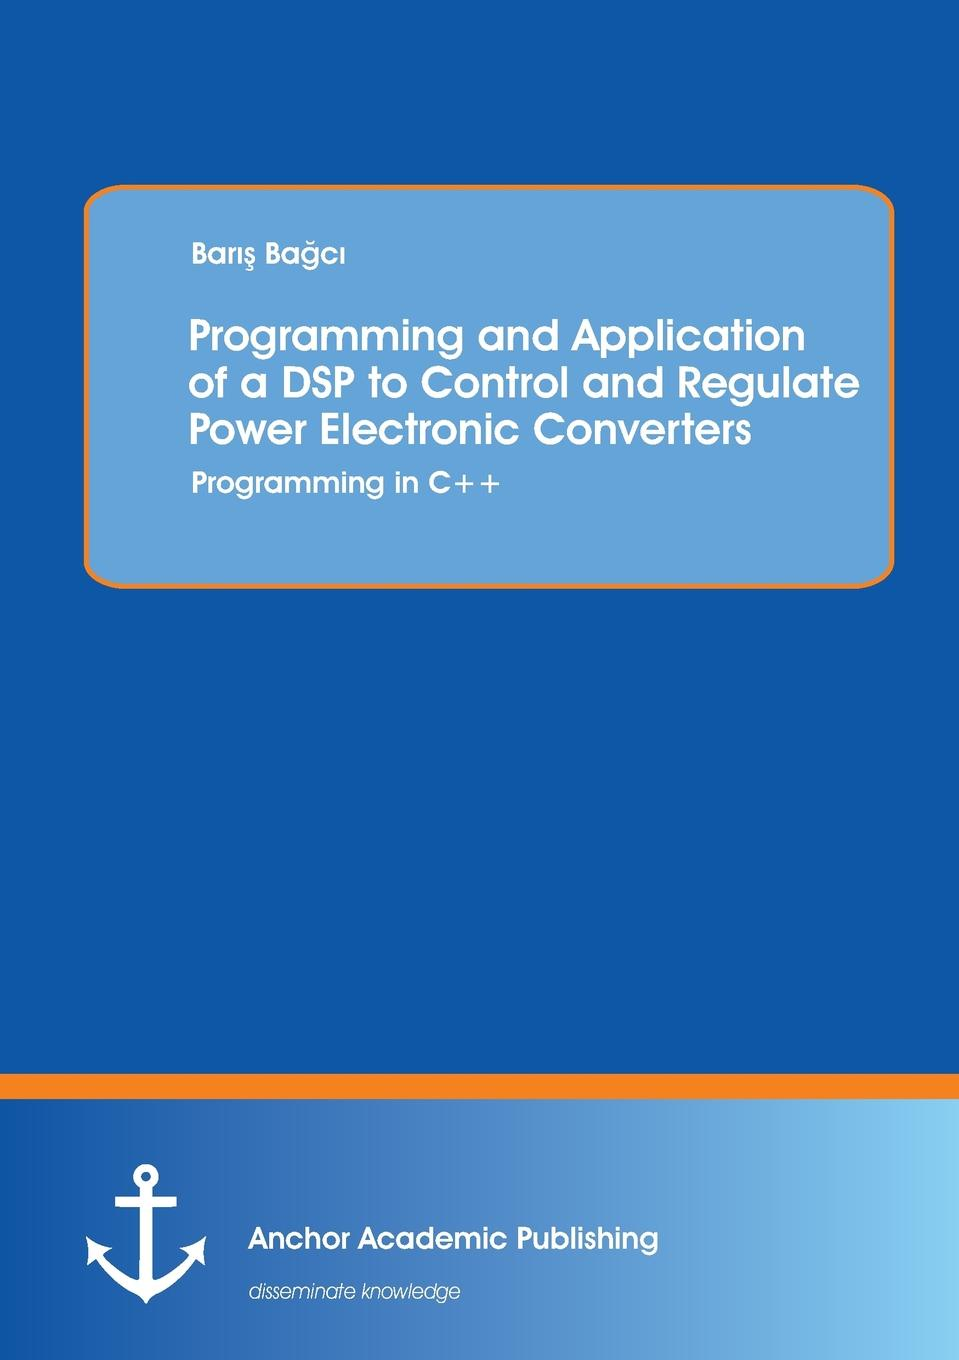 Bar Ba C. Programming and Application of a DSP to Control and Regulate Power Electronic Converters. Programming in C.. xinbo ruan soft switching pwm full bridge converters topologies control and design